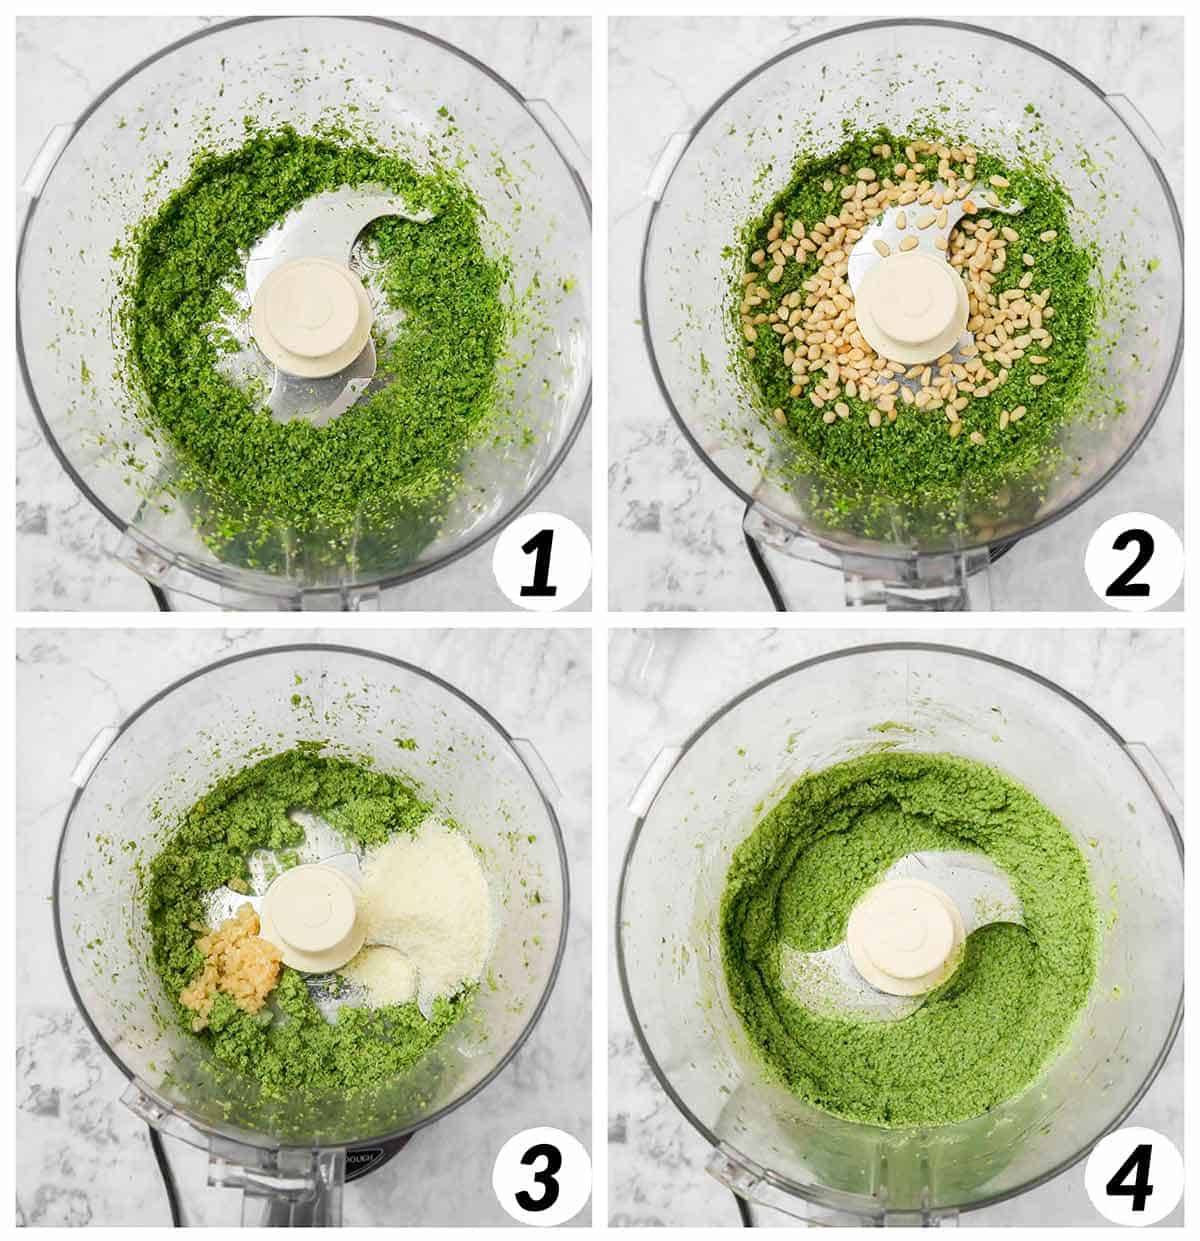 Four panel collage of process shots- mixing together ingredients gradually and mixing with a food processor.